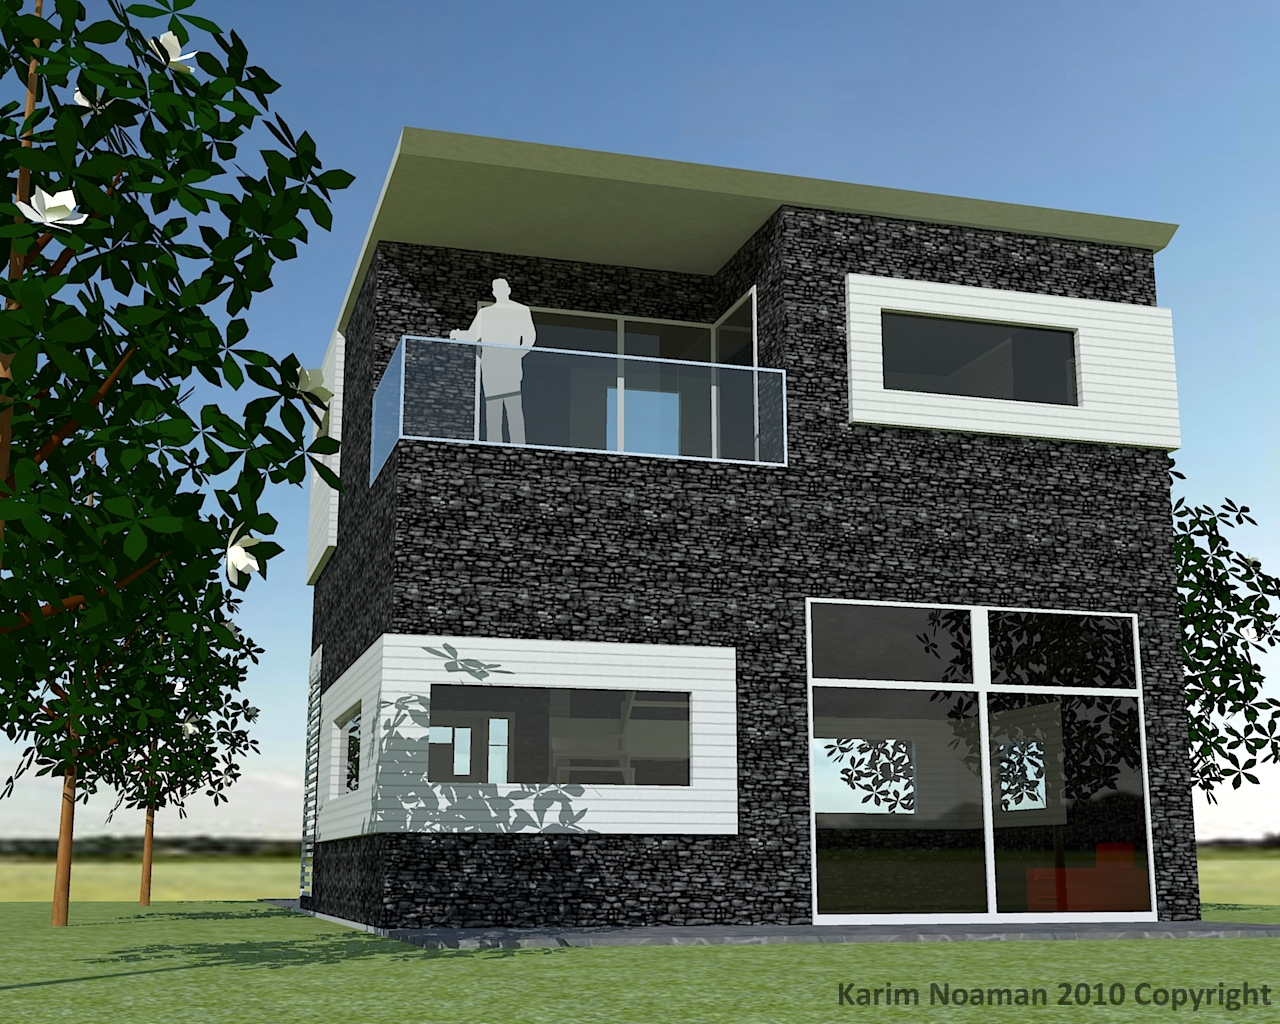 Simple modern house design by knoaman on deviantart Simple modern house plans